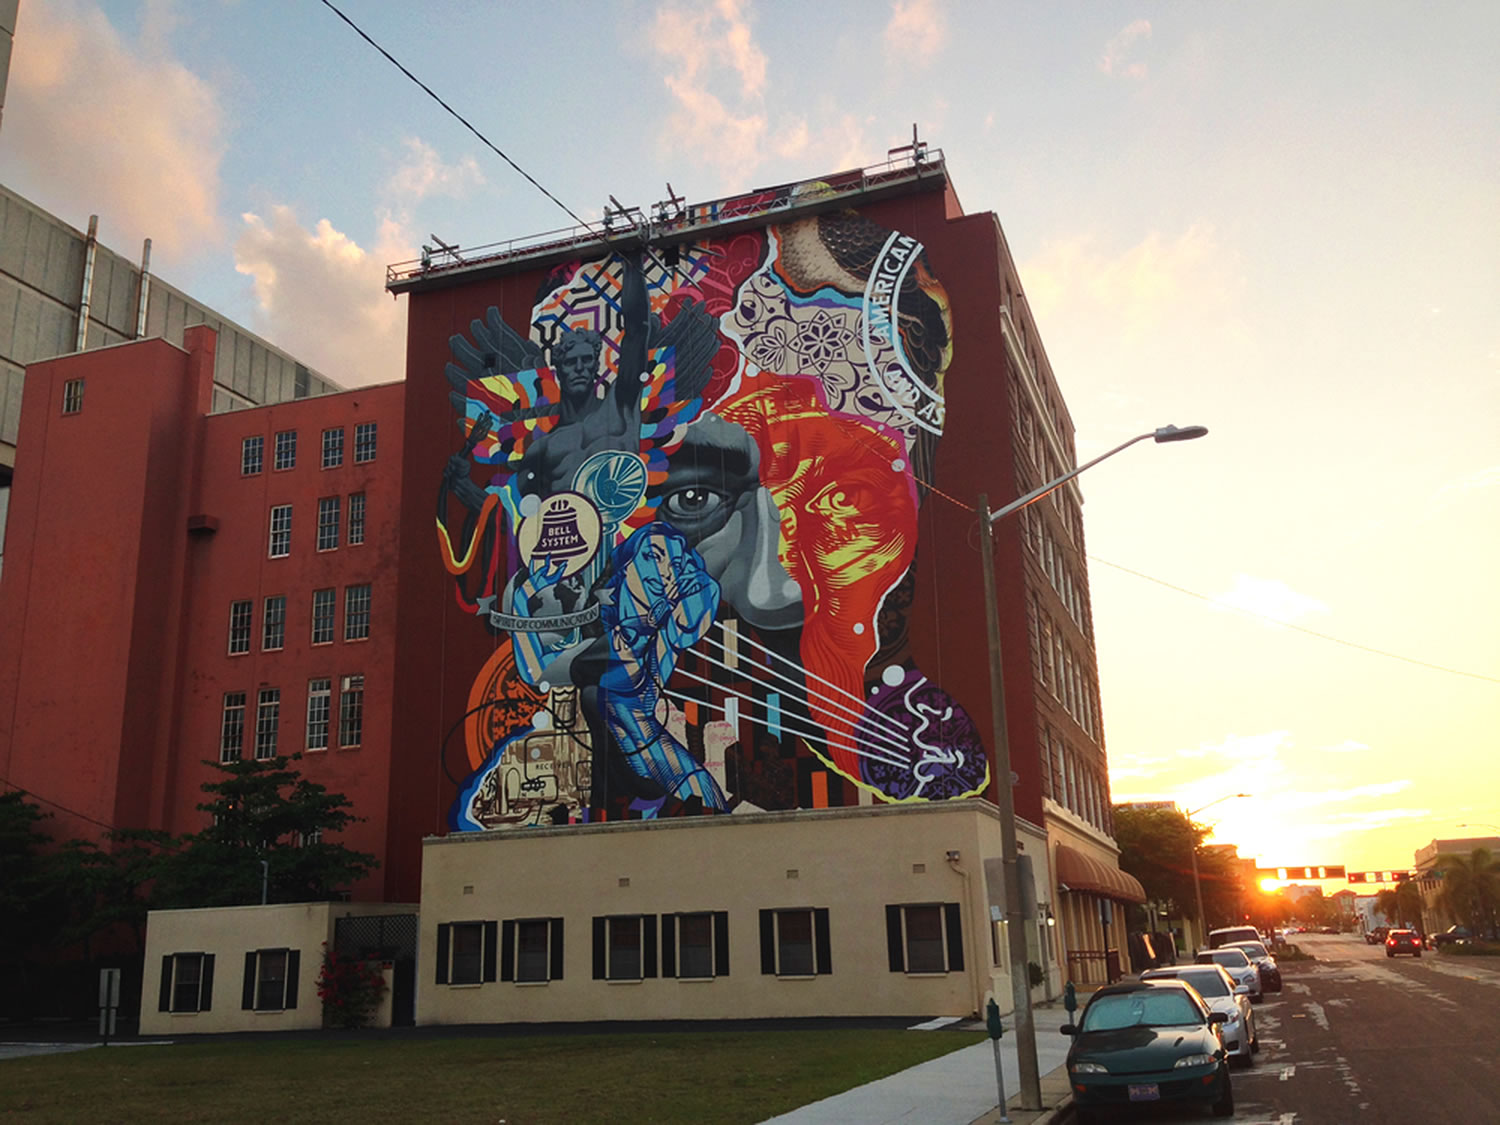 graffiti on building by Tristan Eaton